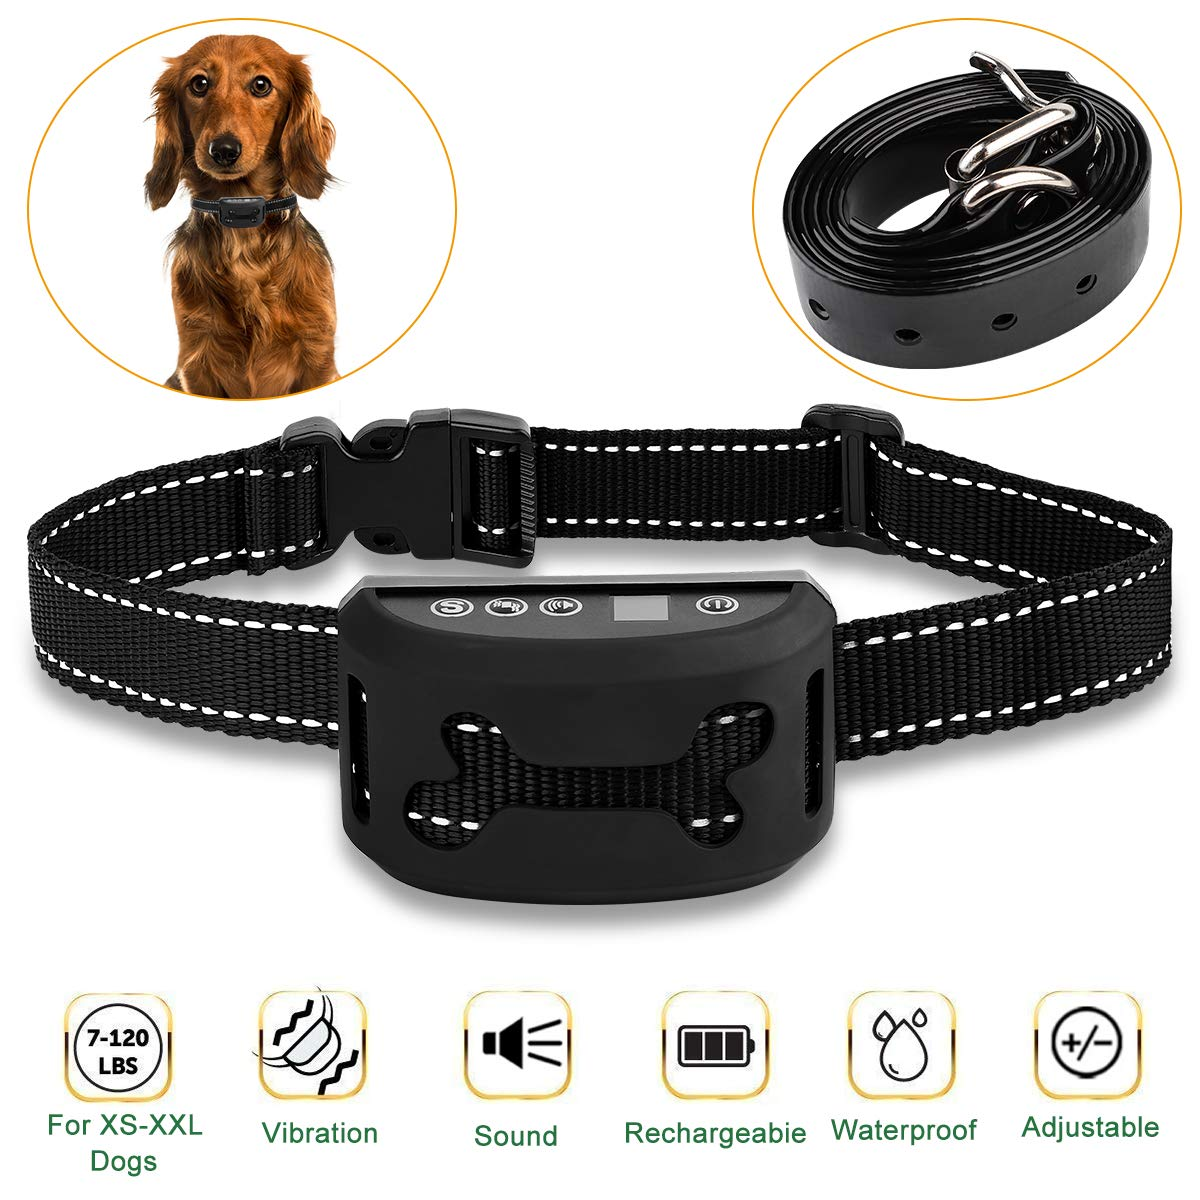 Dog Anti Bark Collar, Supernight Dog Barking Collars Stop Barking with Adjustable Belt Waterproof No Shock Harmless&Humane Training Control Strap, 7 Sensitivity Levels of Sound Vibration for S/M/L Dog